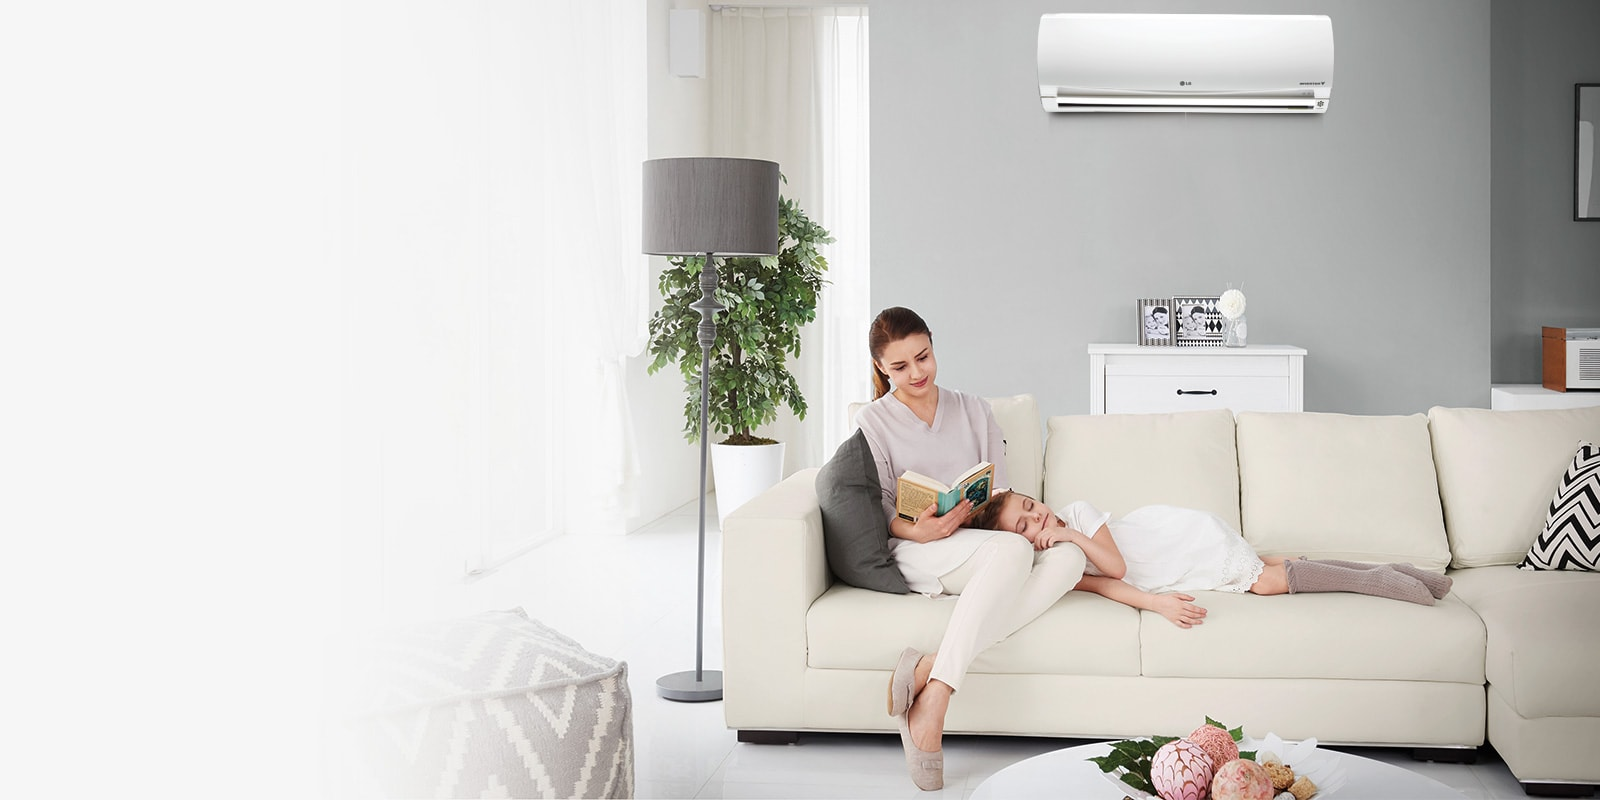 Room Air Conditioning: Find LG Air Conditioners